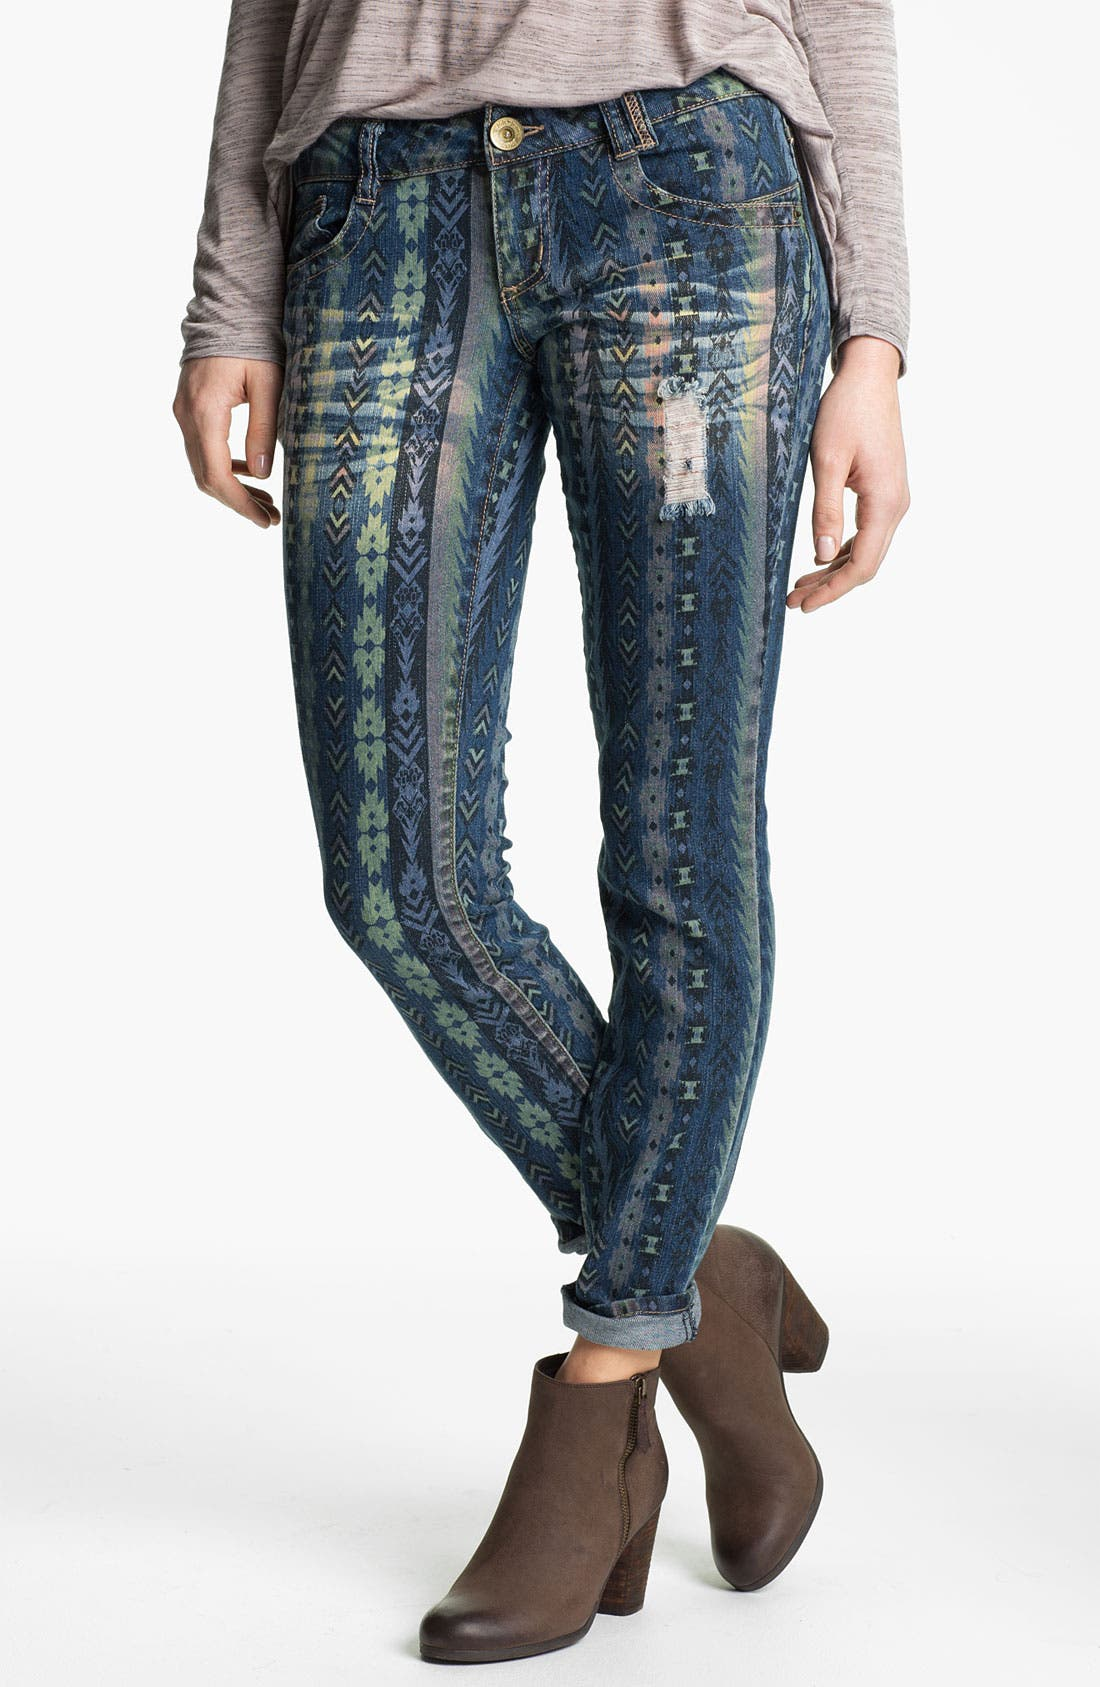 Main Image - Jolt Destroyed Print Denim Skinny Jeans (Juniors)